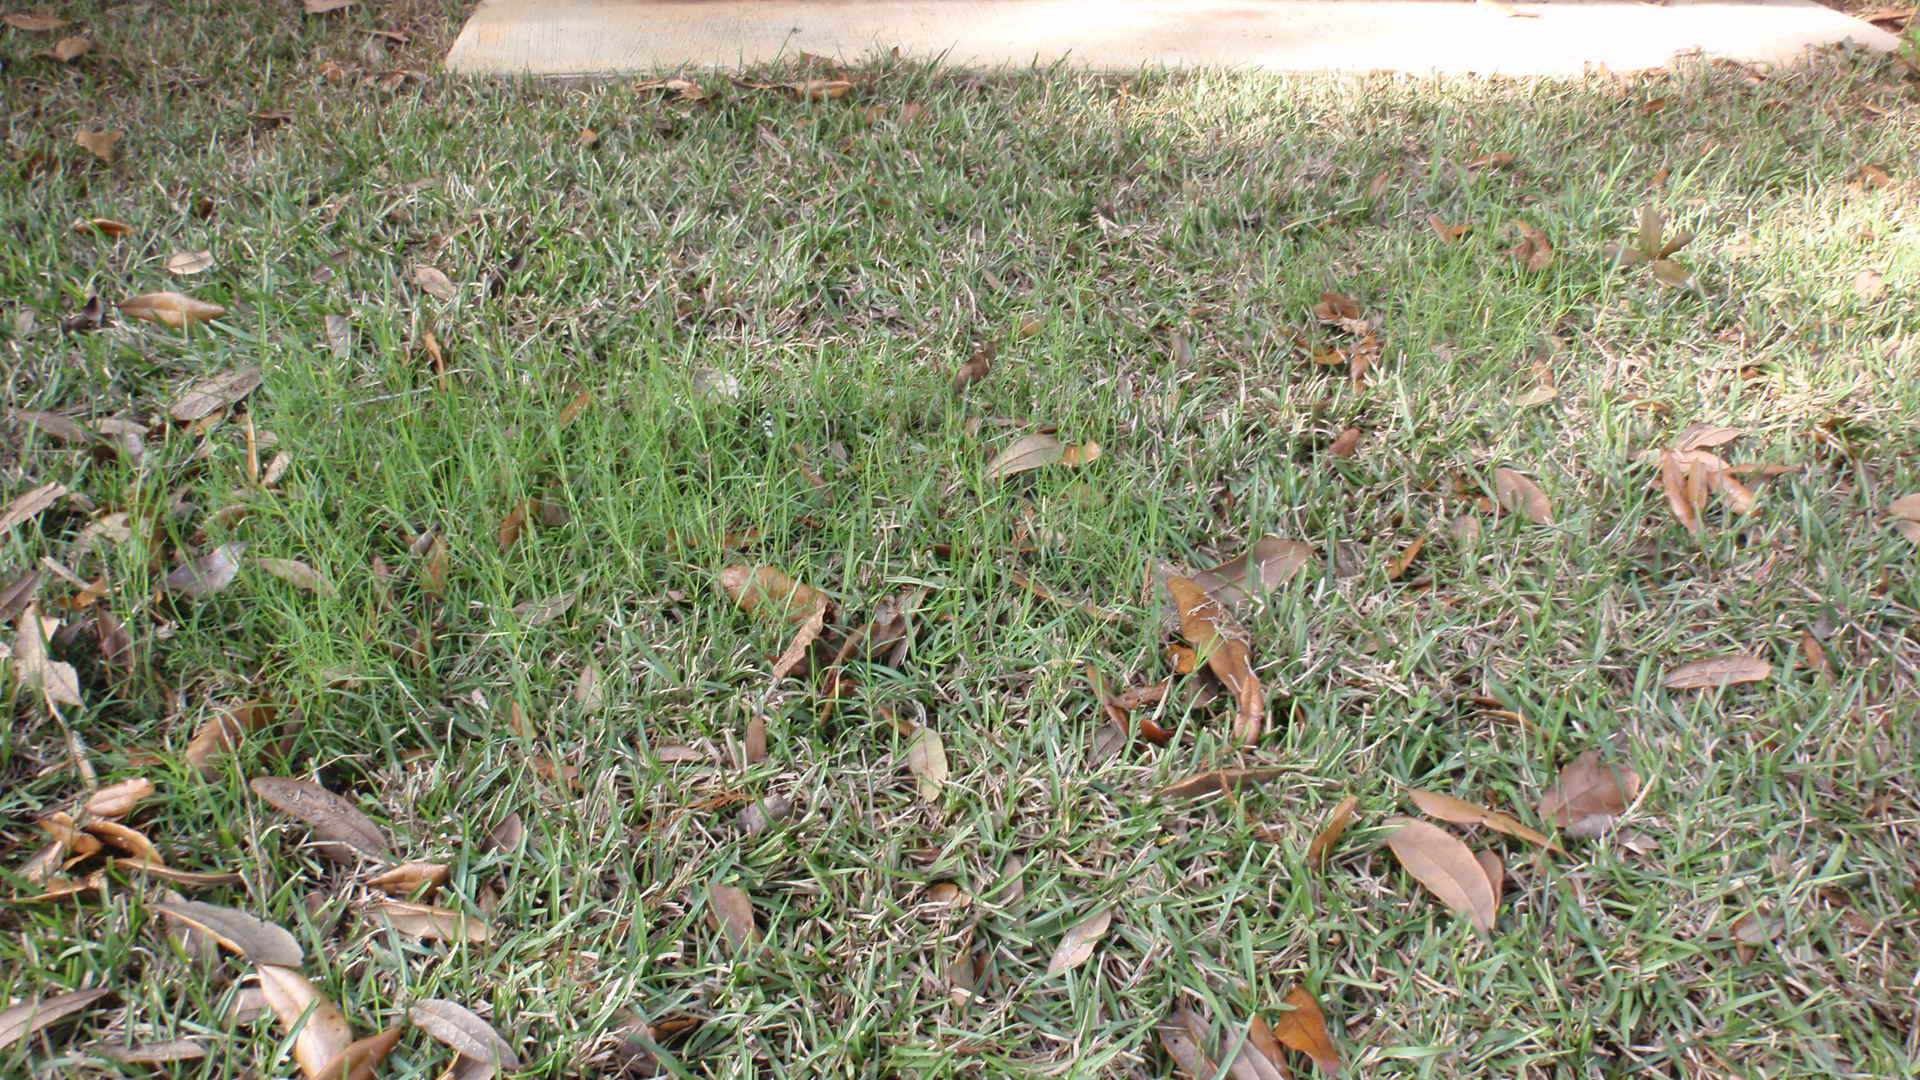 Bermudagrass Growing In A Piece Of Centipede Sod. This Piece Should Have  Been Removed During Installation To Prevent The Bermudagrass From Taking  Over A ...